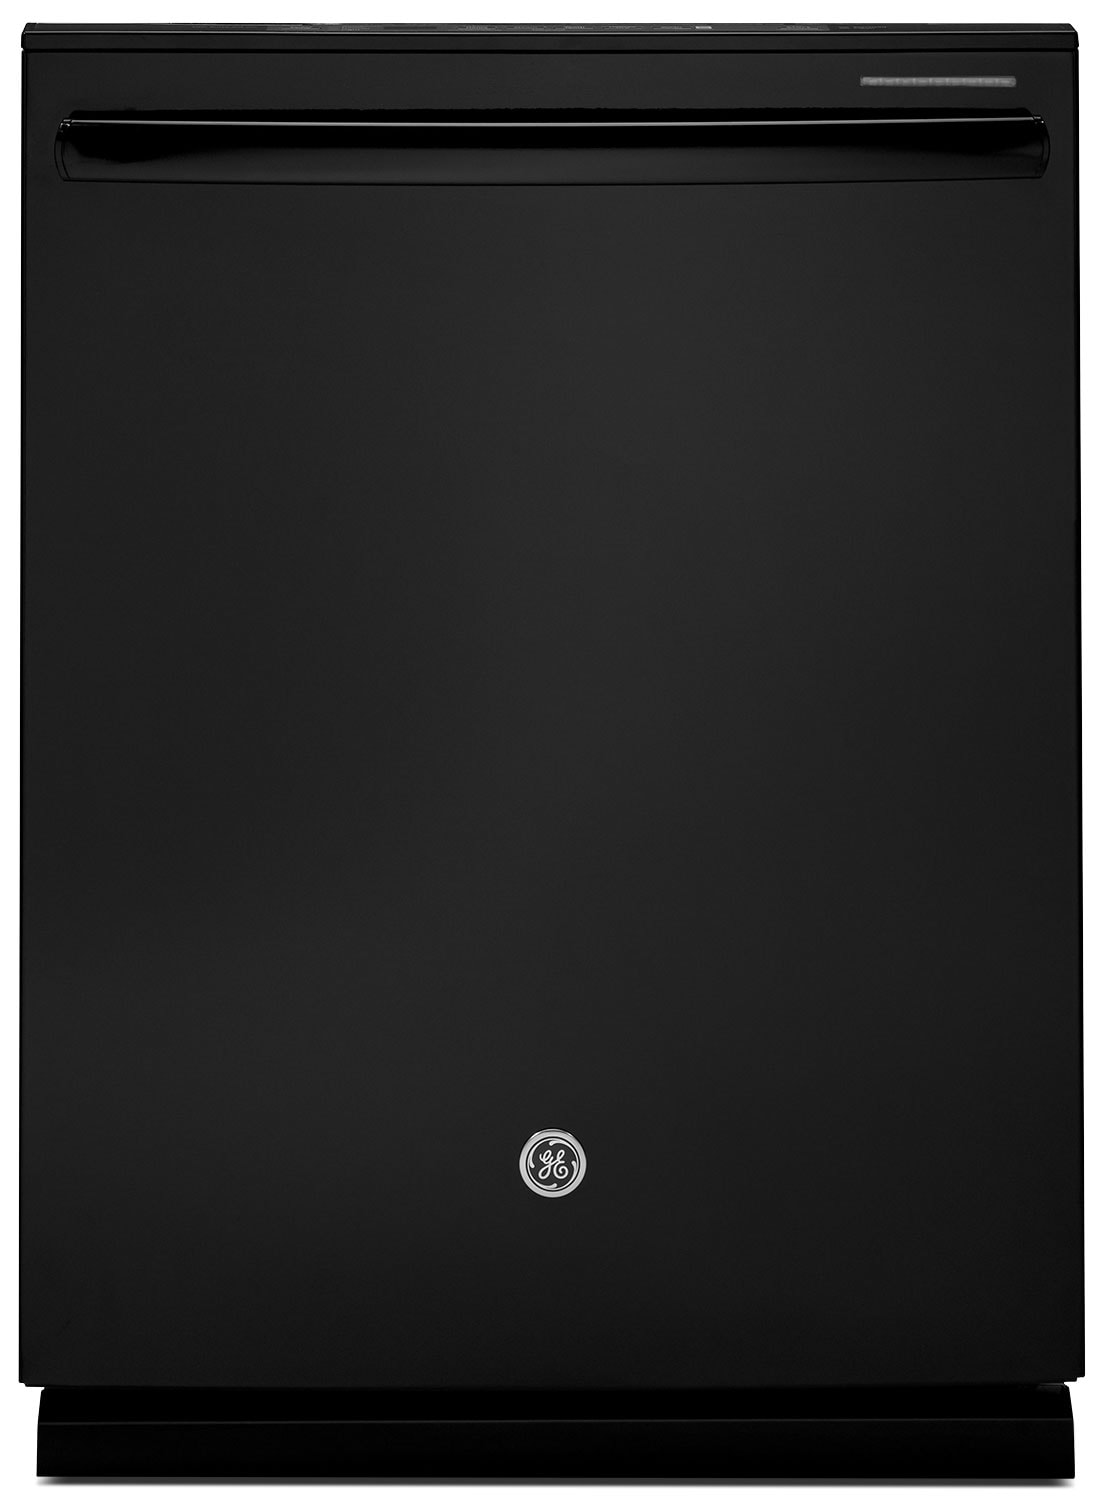 "Clean-Up - GE 24"" Built-In Dishwasher - Black"